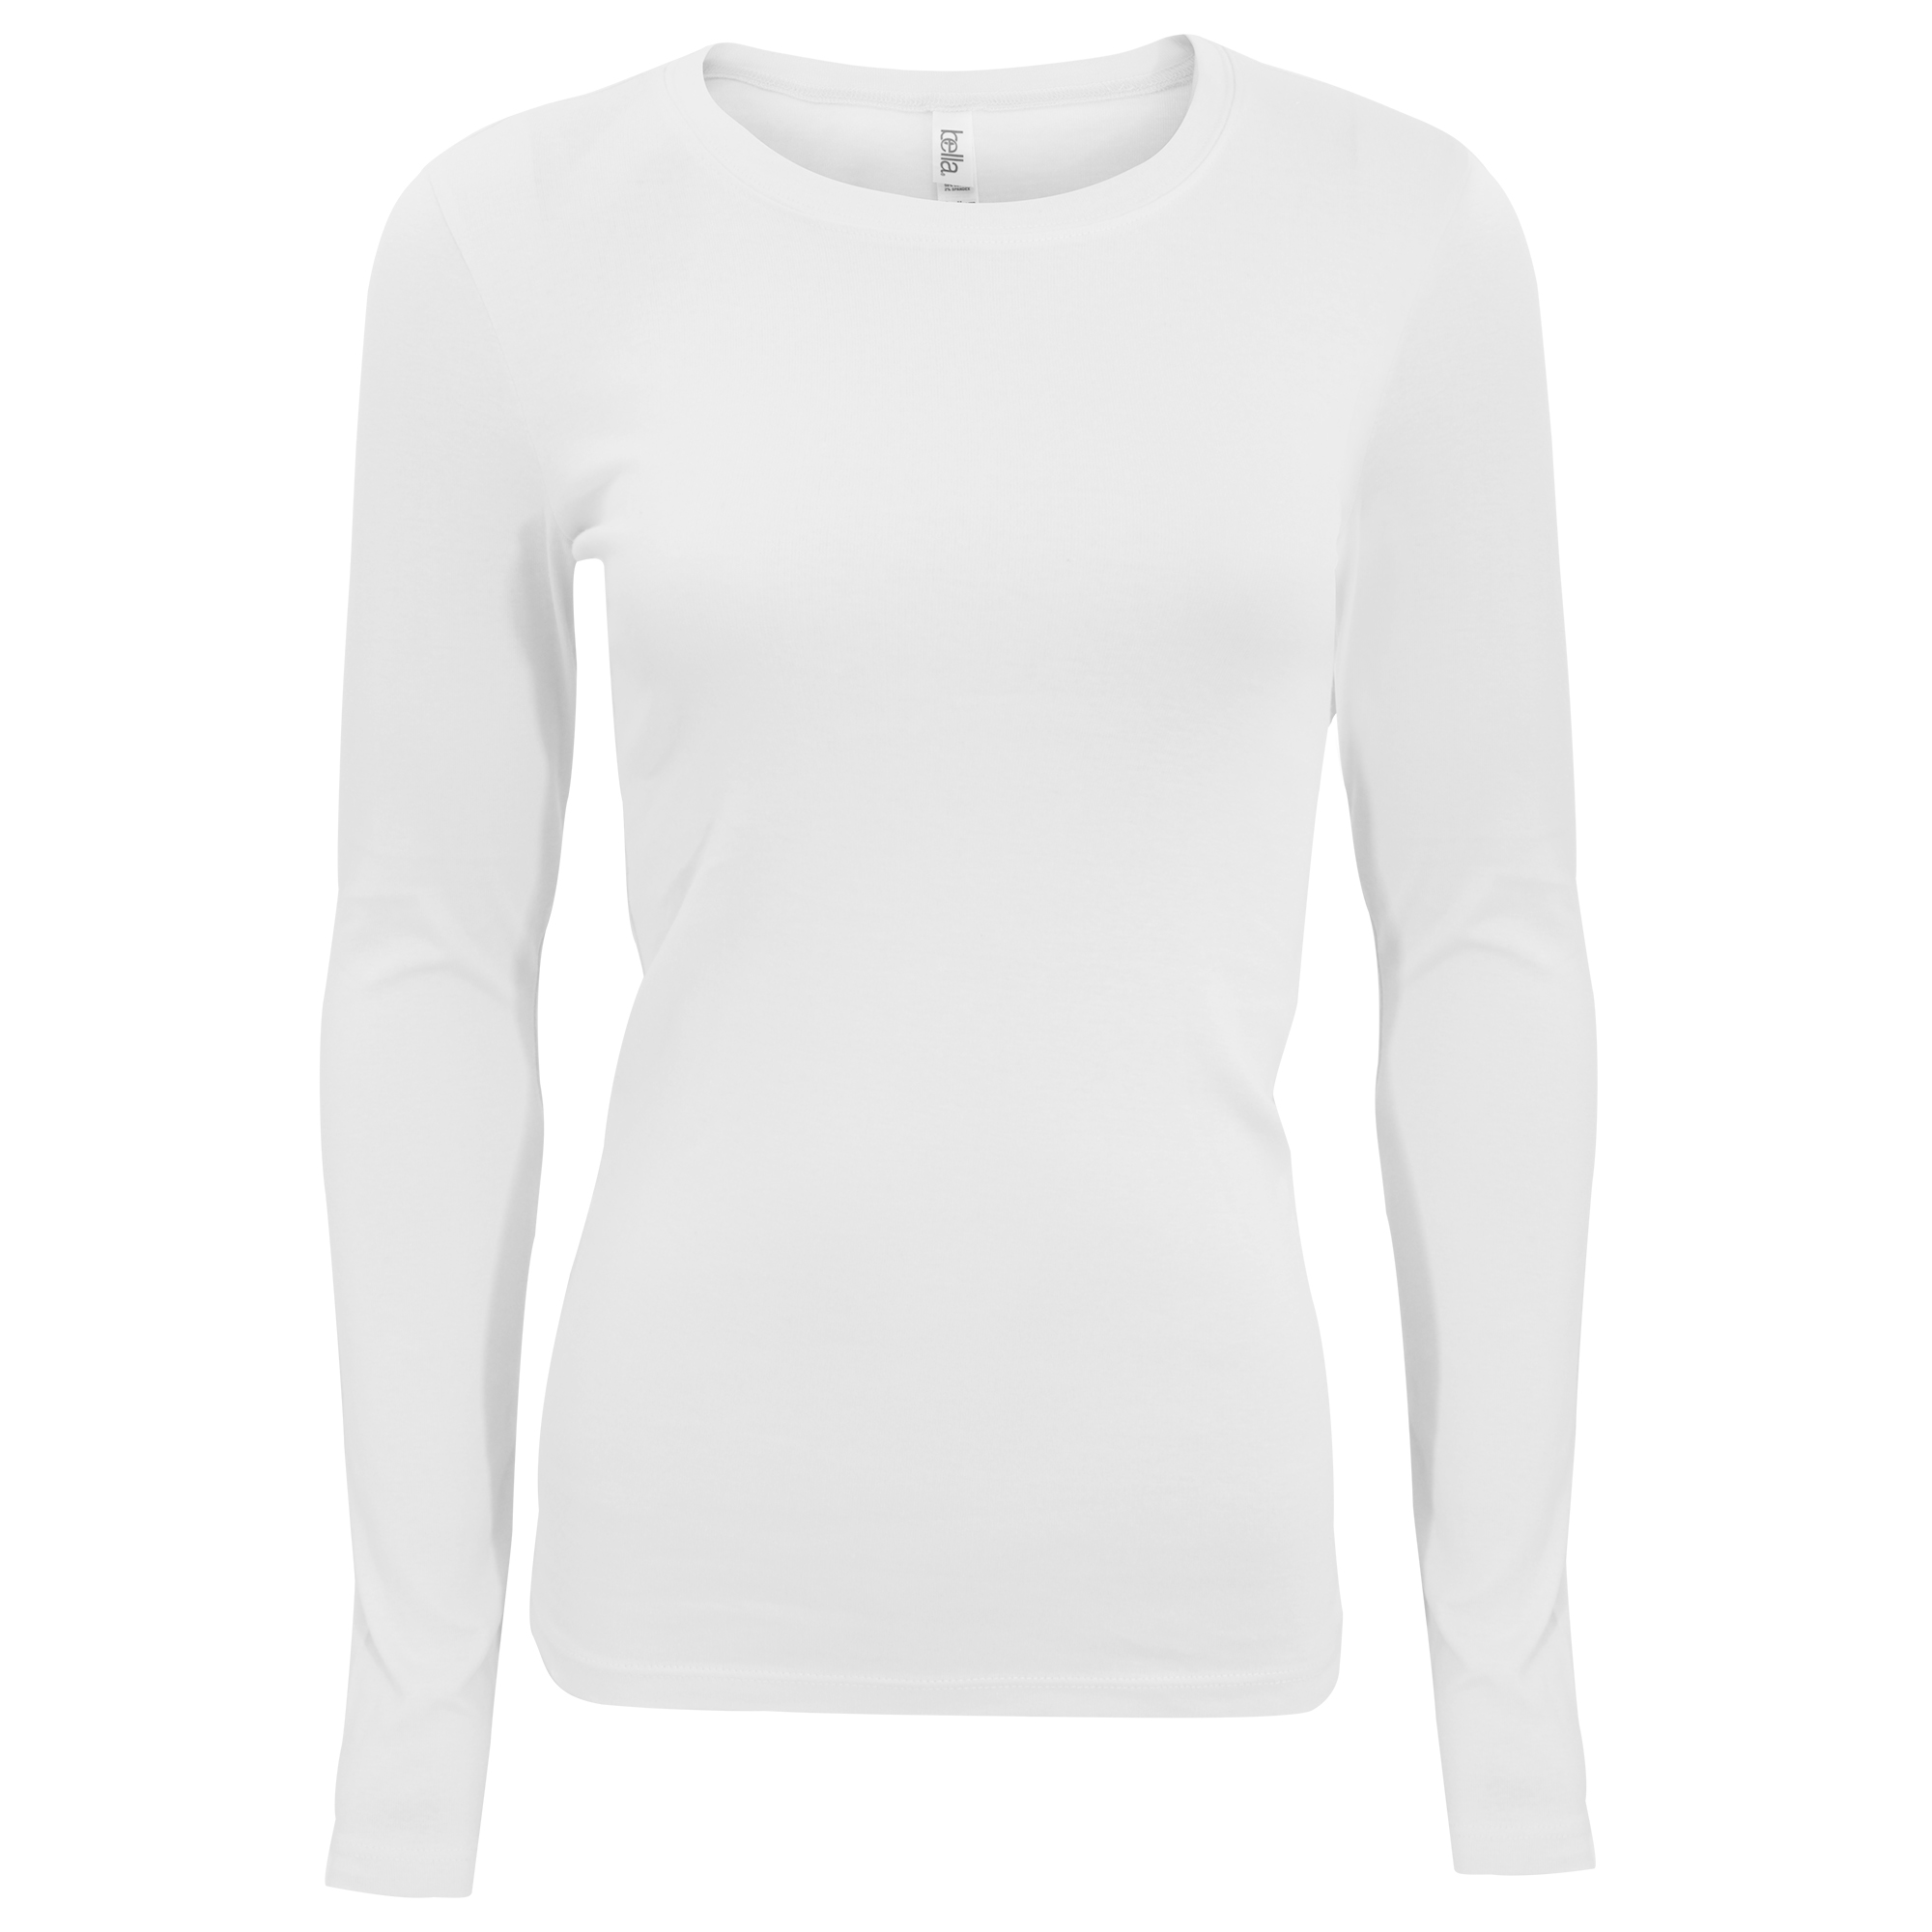 T-Shirts Shirts & Polos Running & Training Baselayers Shoes Shop All Shoes. Hiking Trail Running Training Casual Boots Sandals Ultra Series Please enter your email so we can alert you when the WOMEN'S WARM LONG-SLEEVE CREW NECK in is back in stock. We promise not to spam you. You will only be notified once. Email Address.